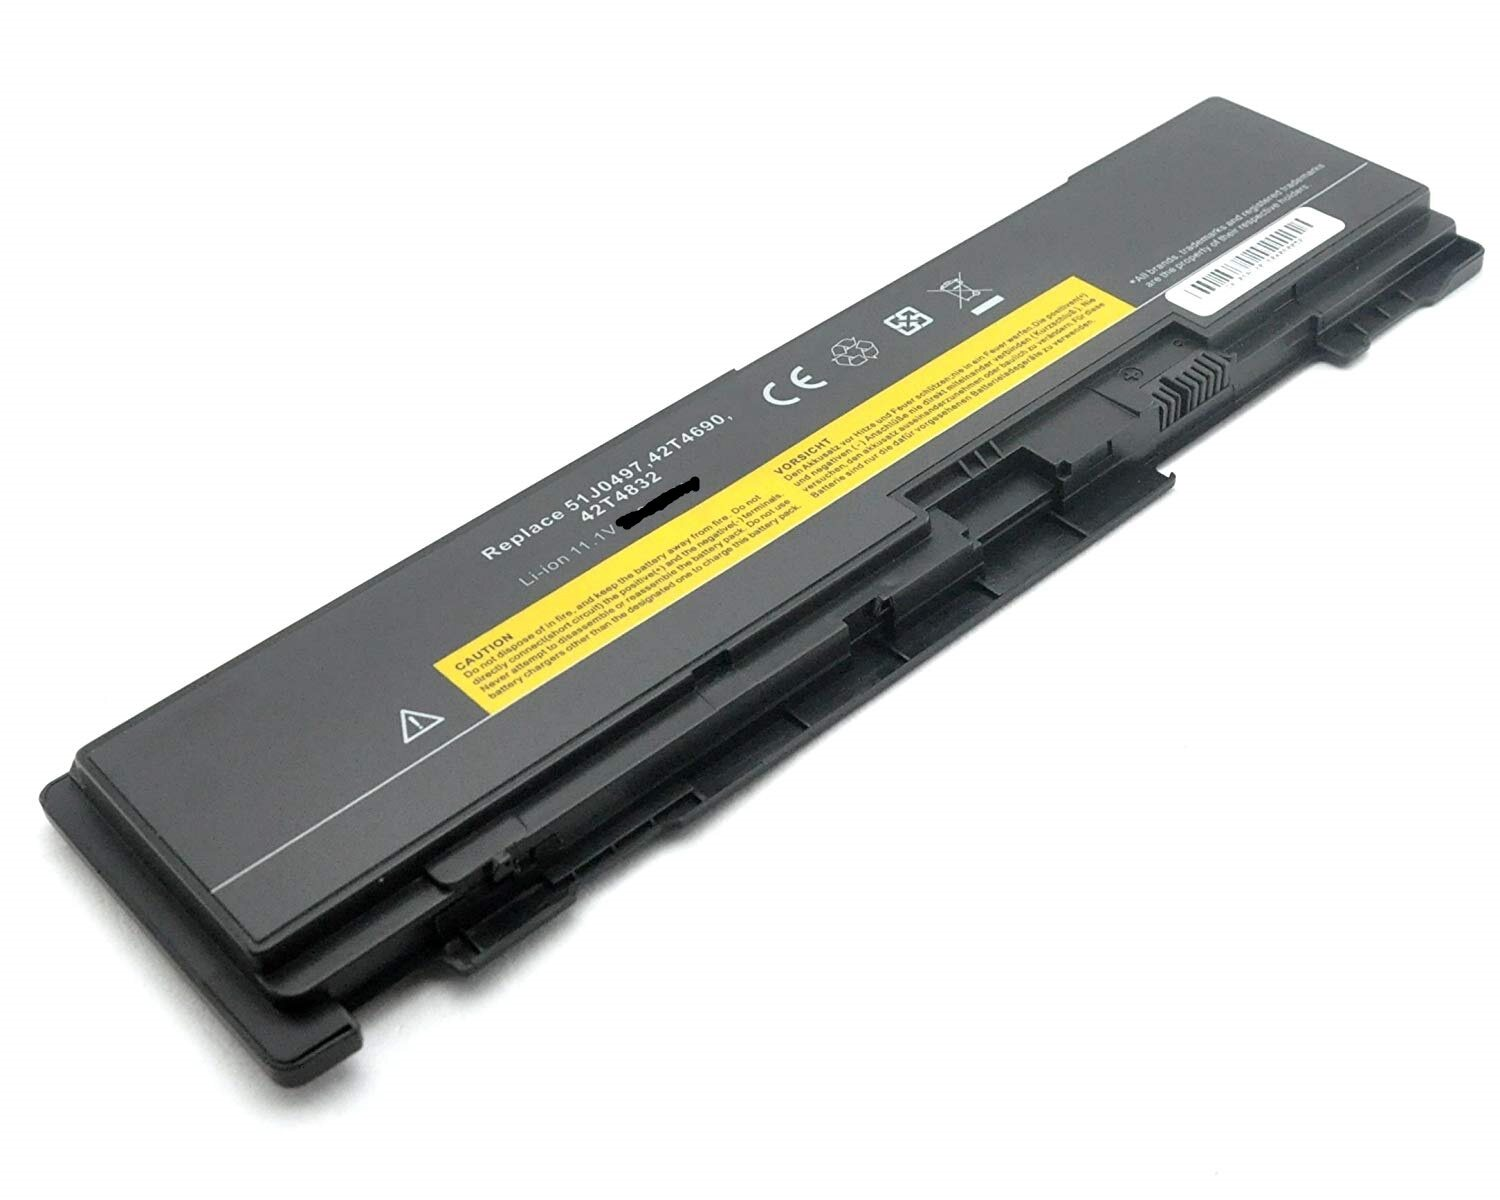 LENOVO ThinkPad EDGE E425 1198 REPLACEMENT BATTERY REPLACEMENT BATTERY